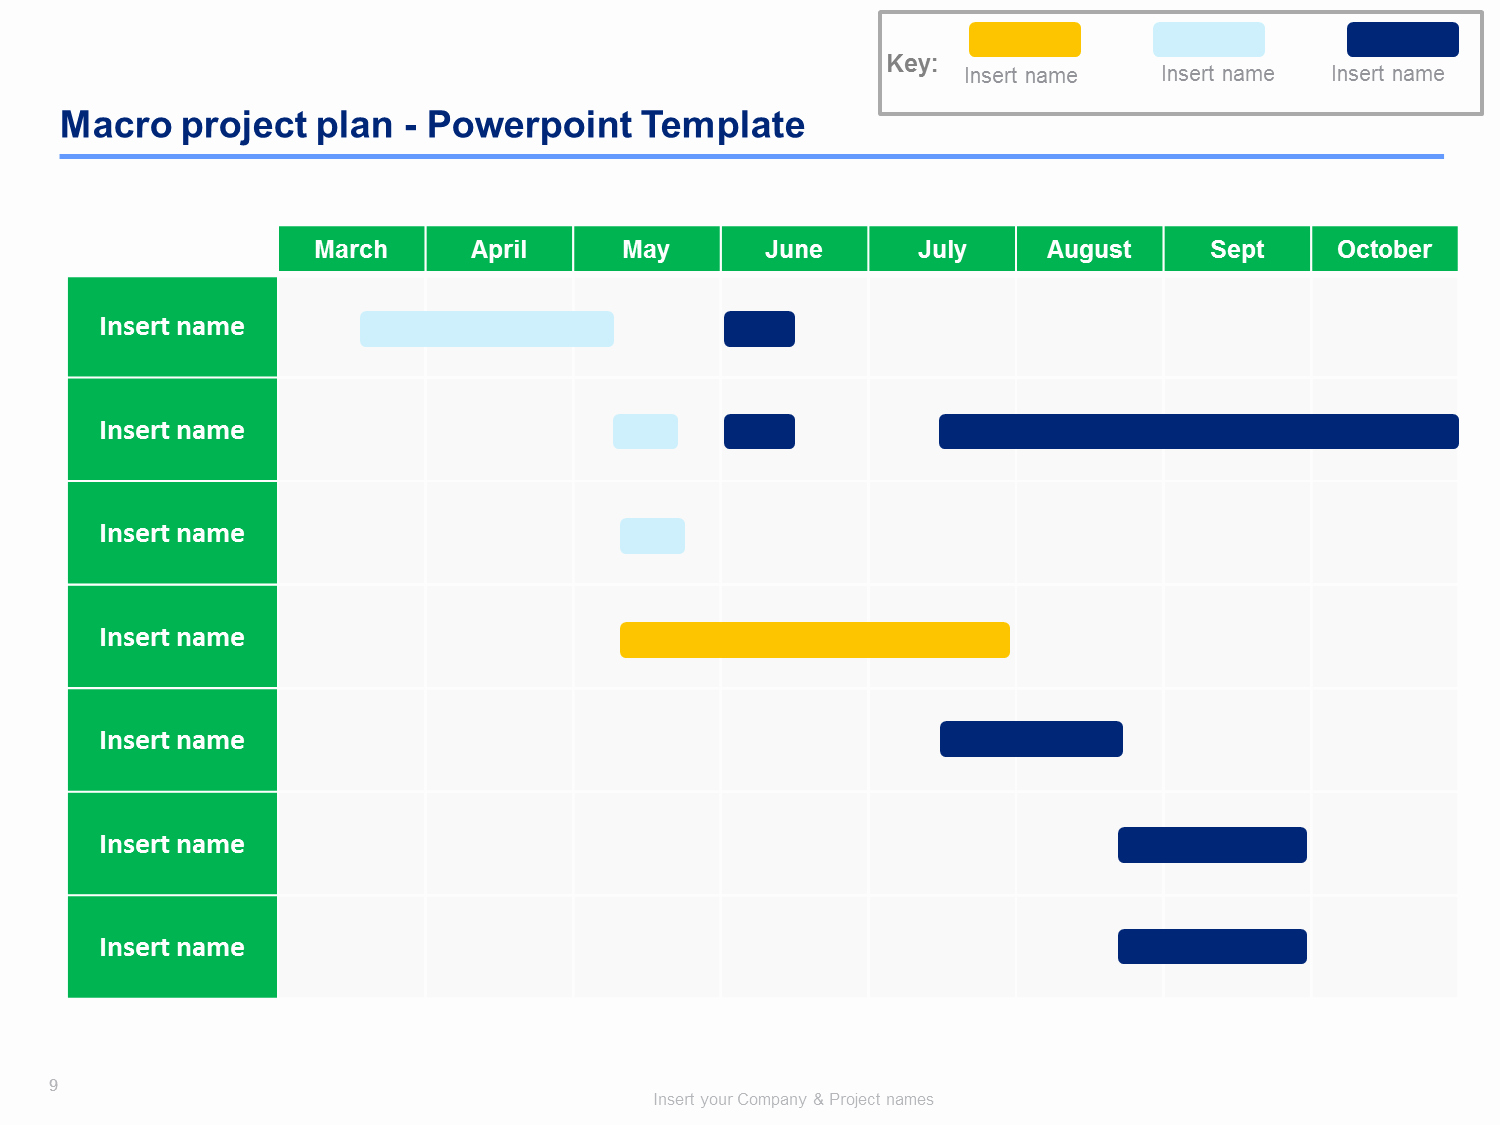 Project Plan Template Powerpoint Unique Download now 10 Project Plan Templates & Project Timeline